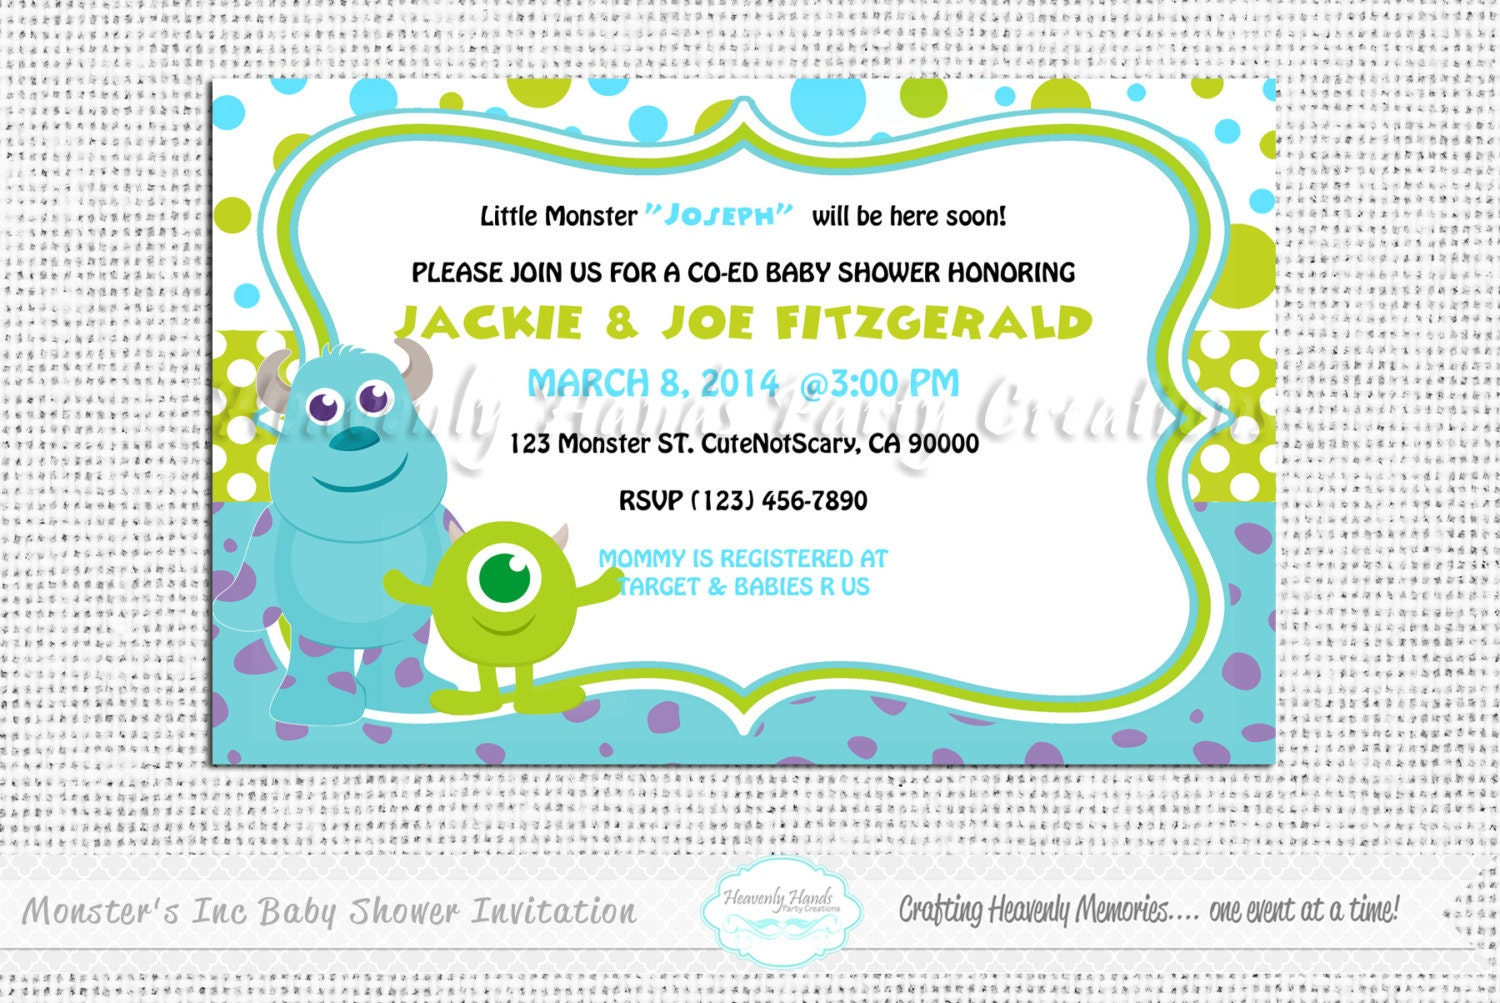 Monsters Inc Baby Shower Invitations Little Monsters Baby Shower Digital  Invi On Baby Shower Invitations Boy